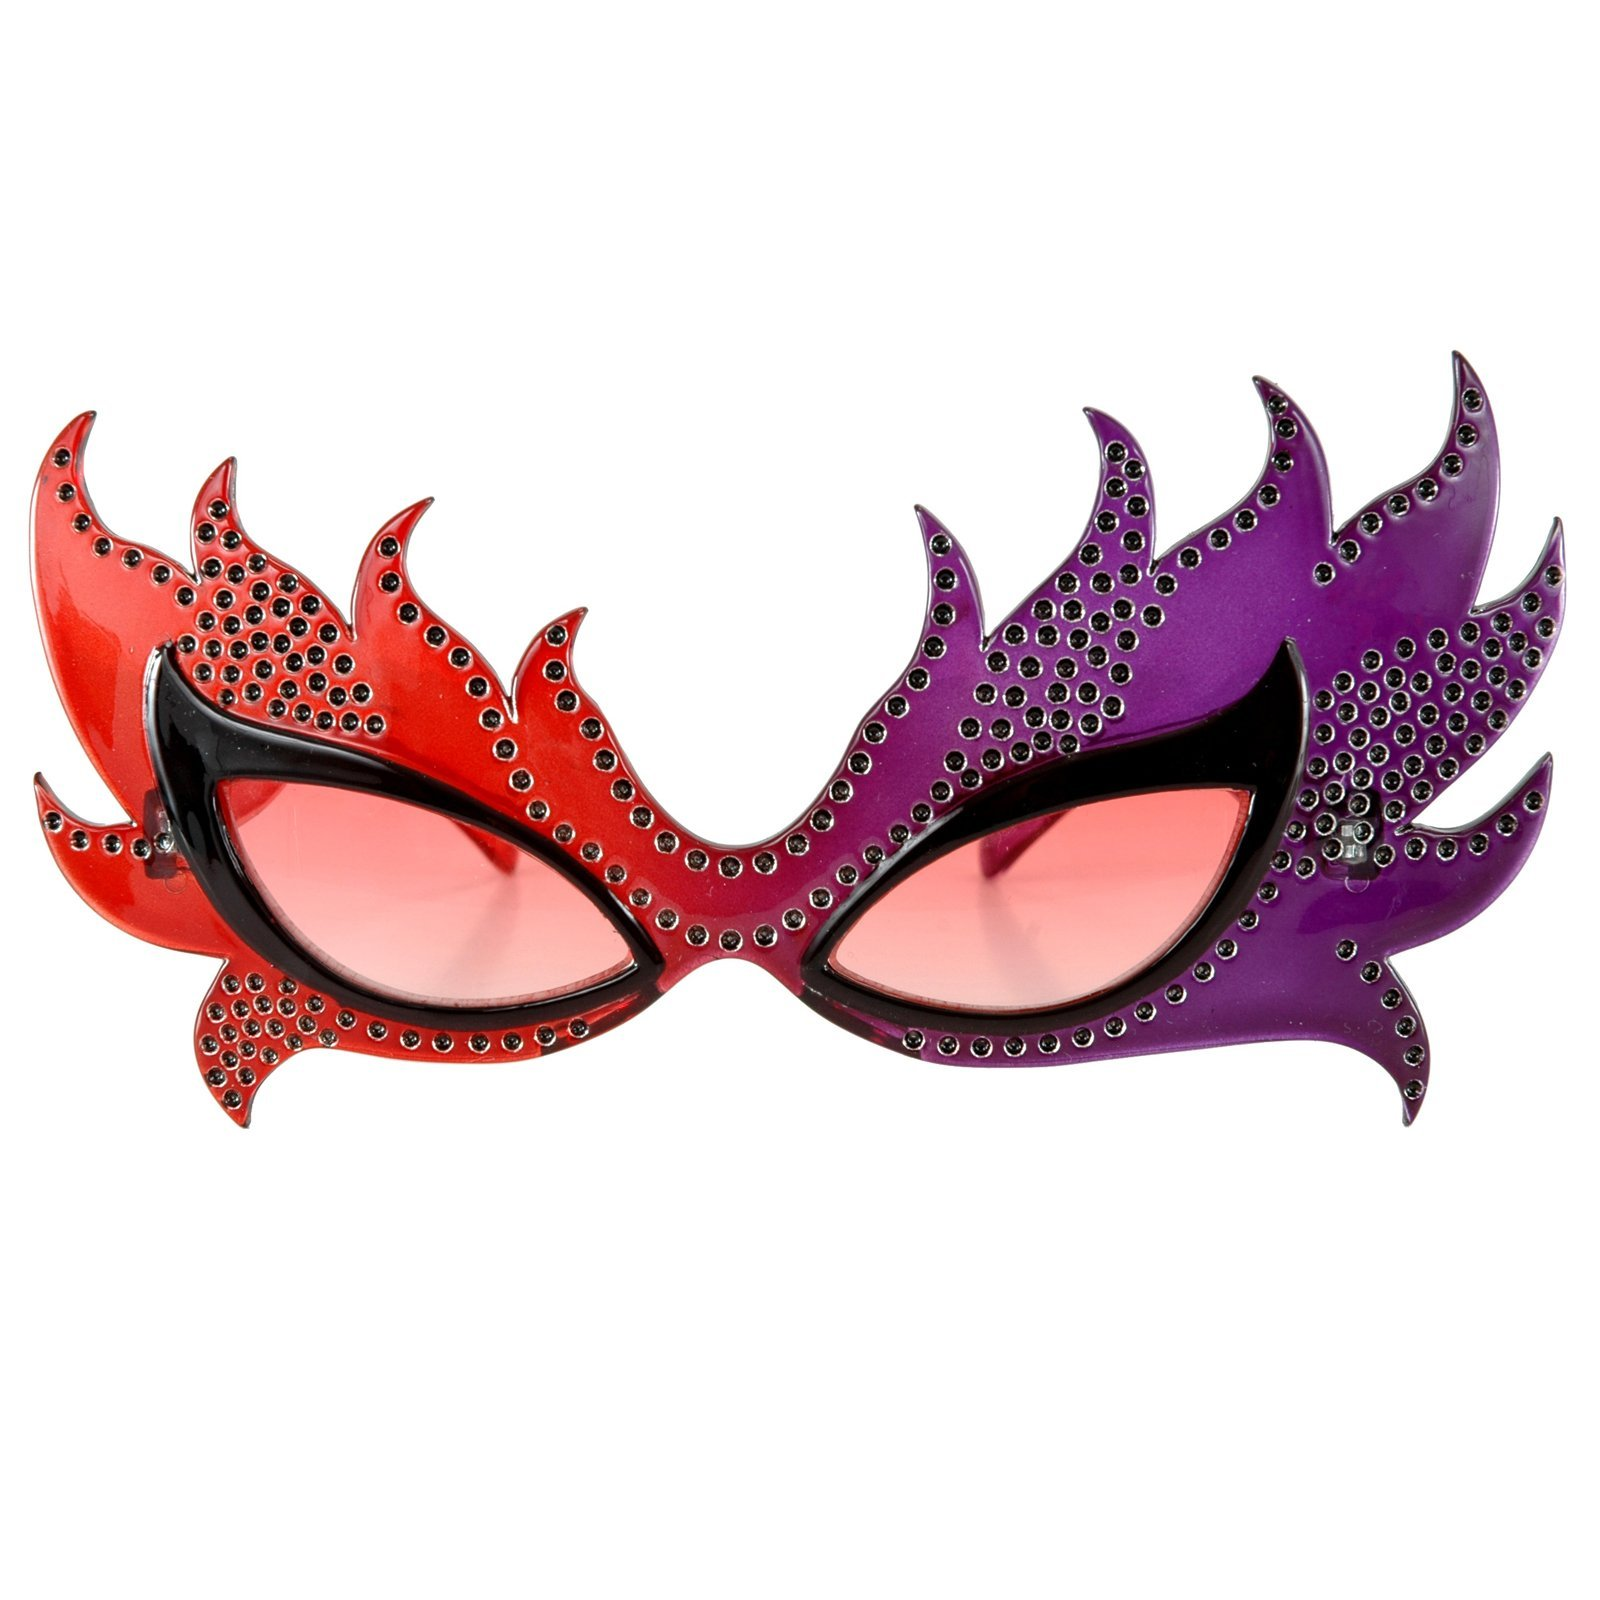 Red & Purple Feather Motiff Eye Mask Glasses by elope